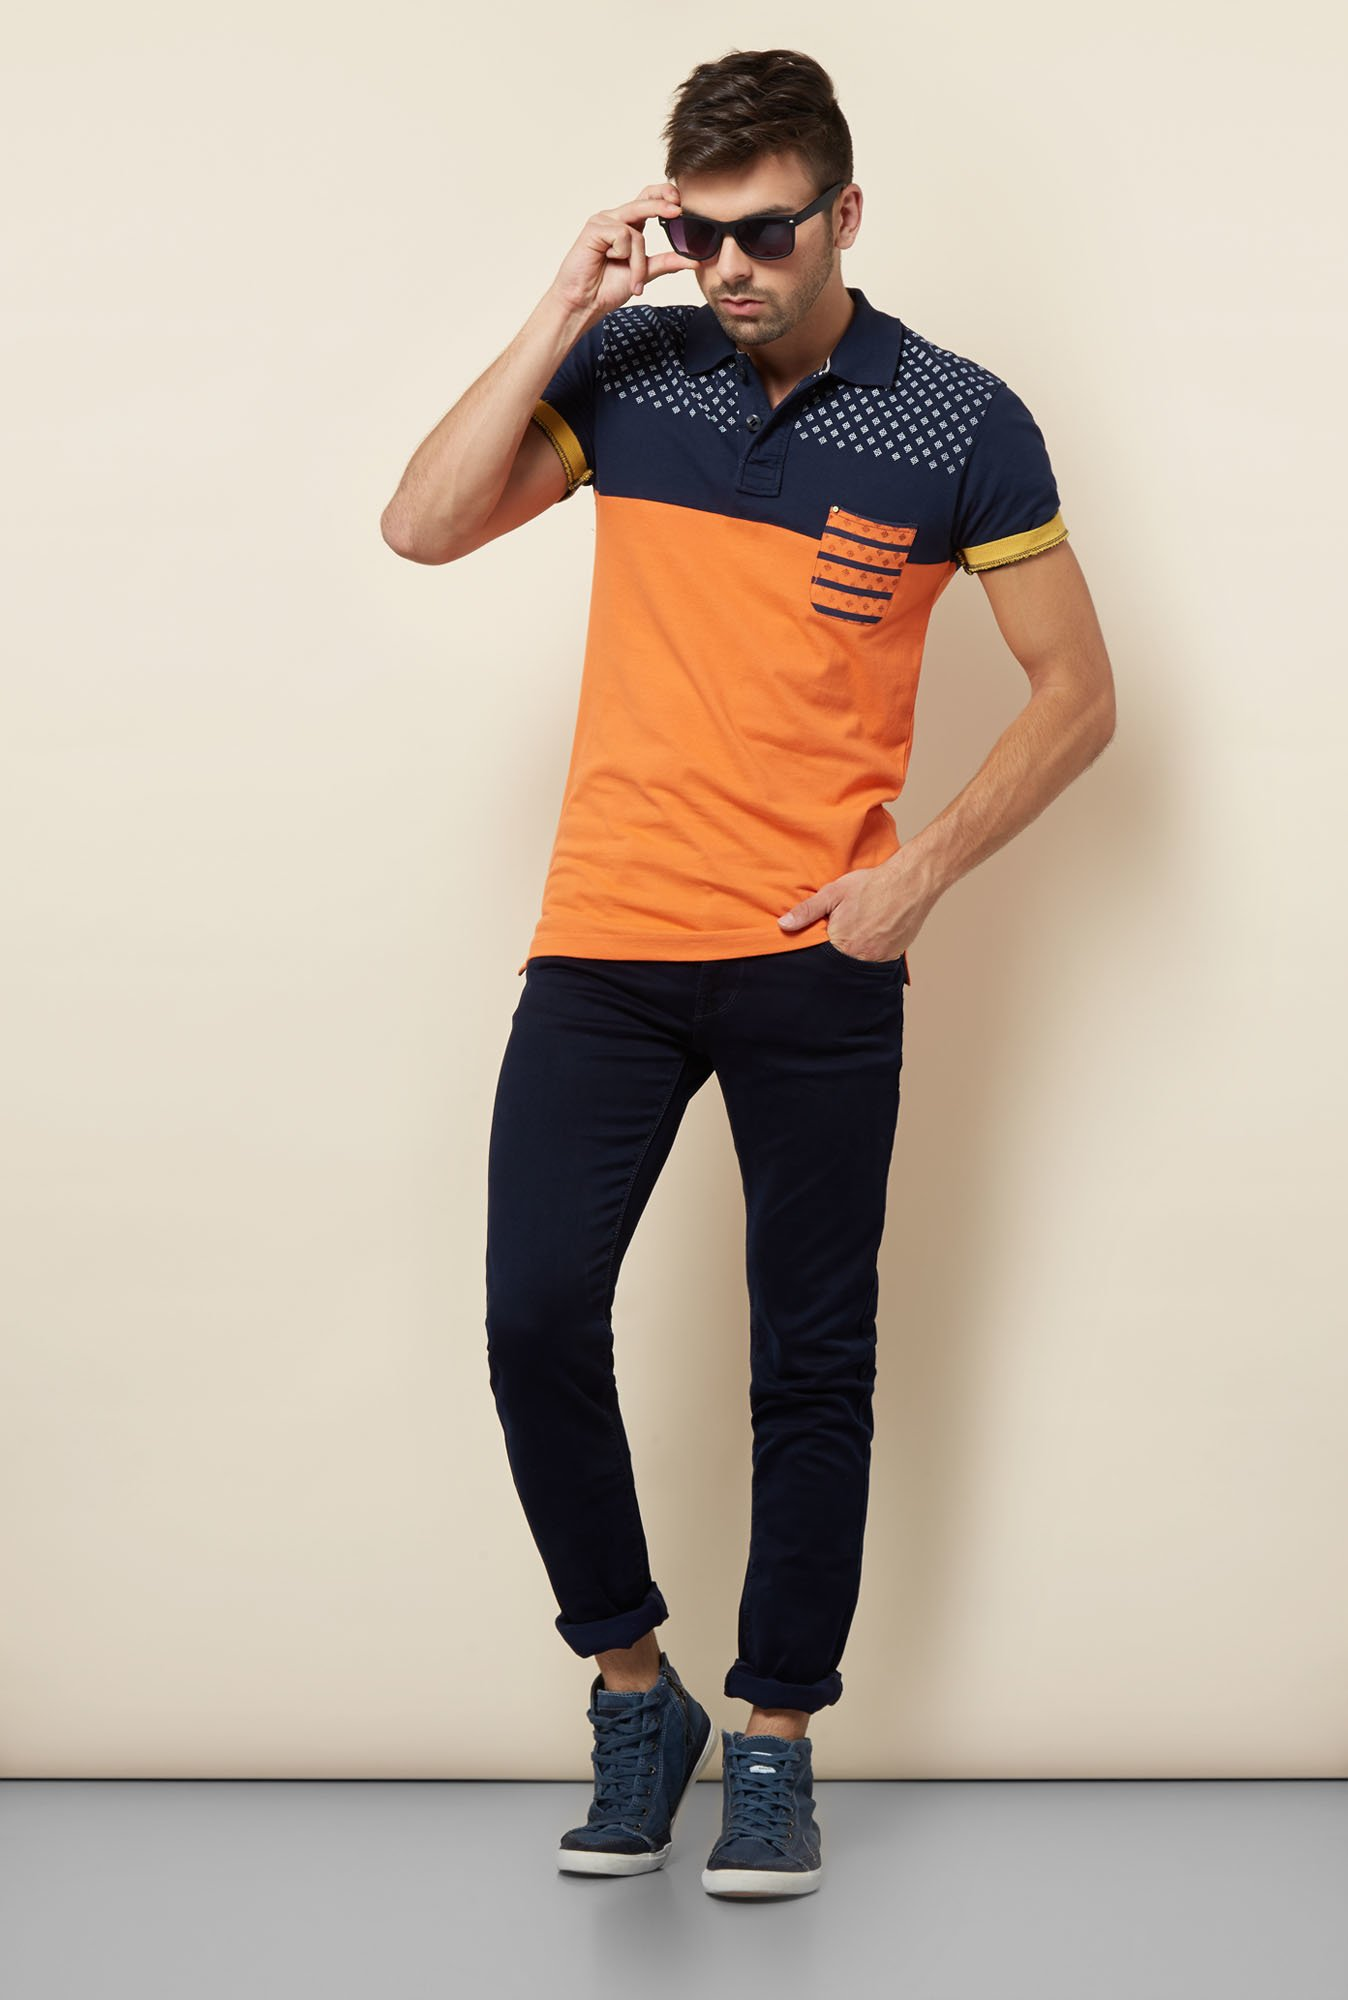 Lawman Orange & Navy Printed T shirt